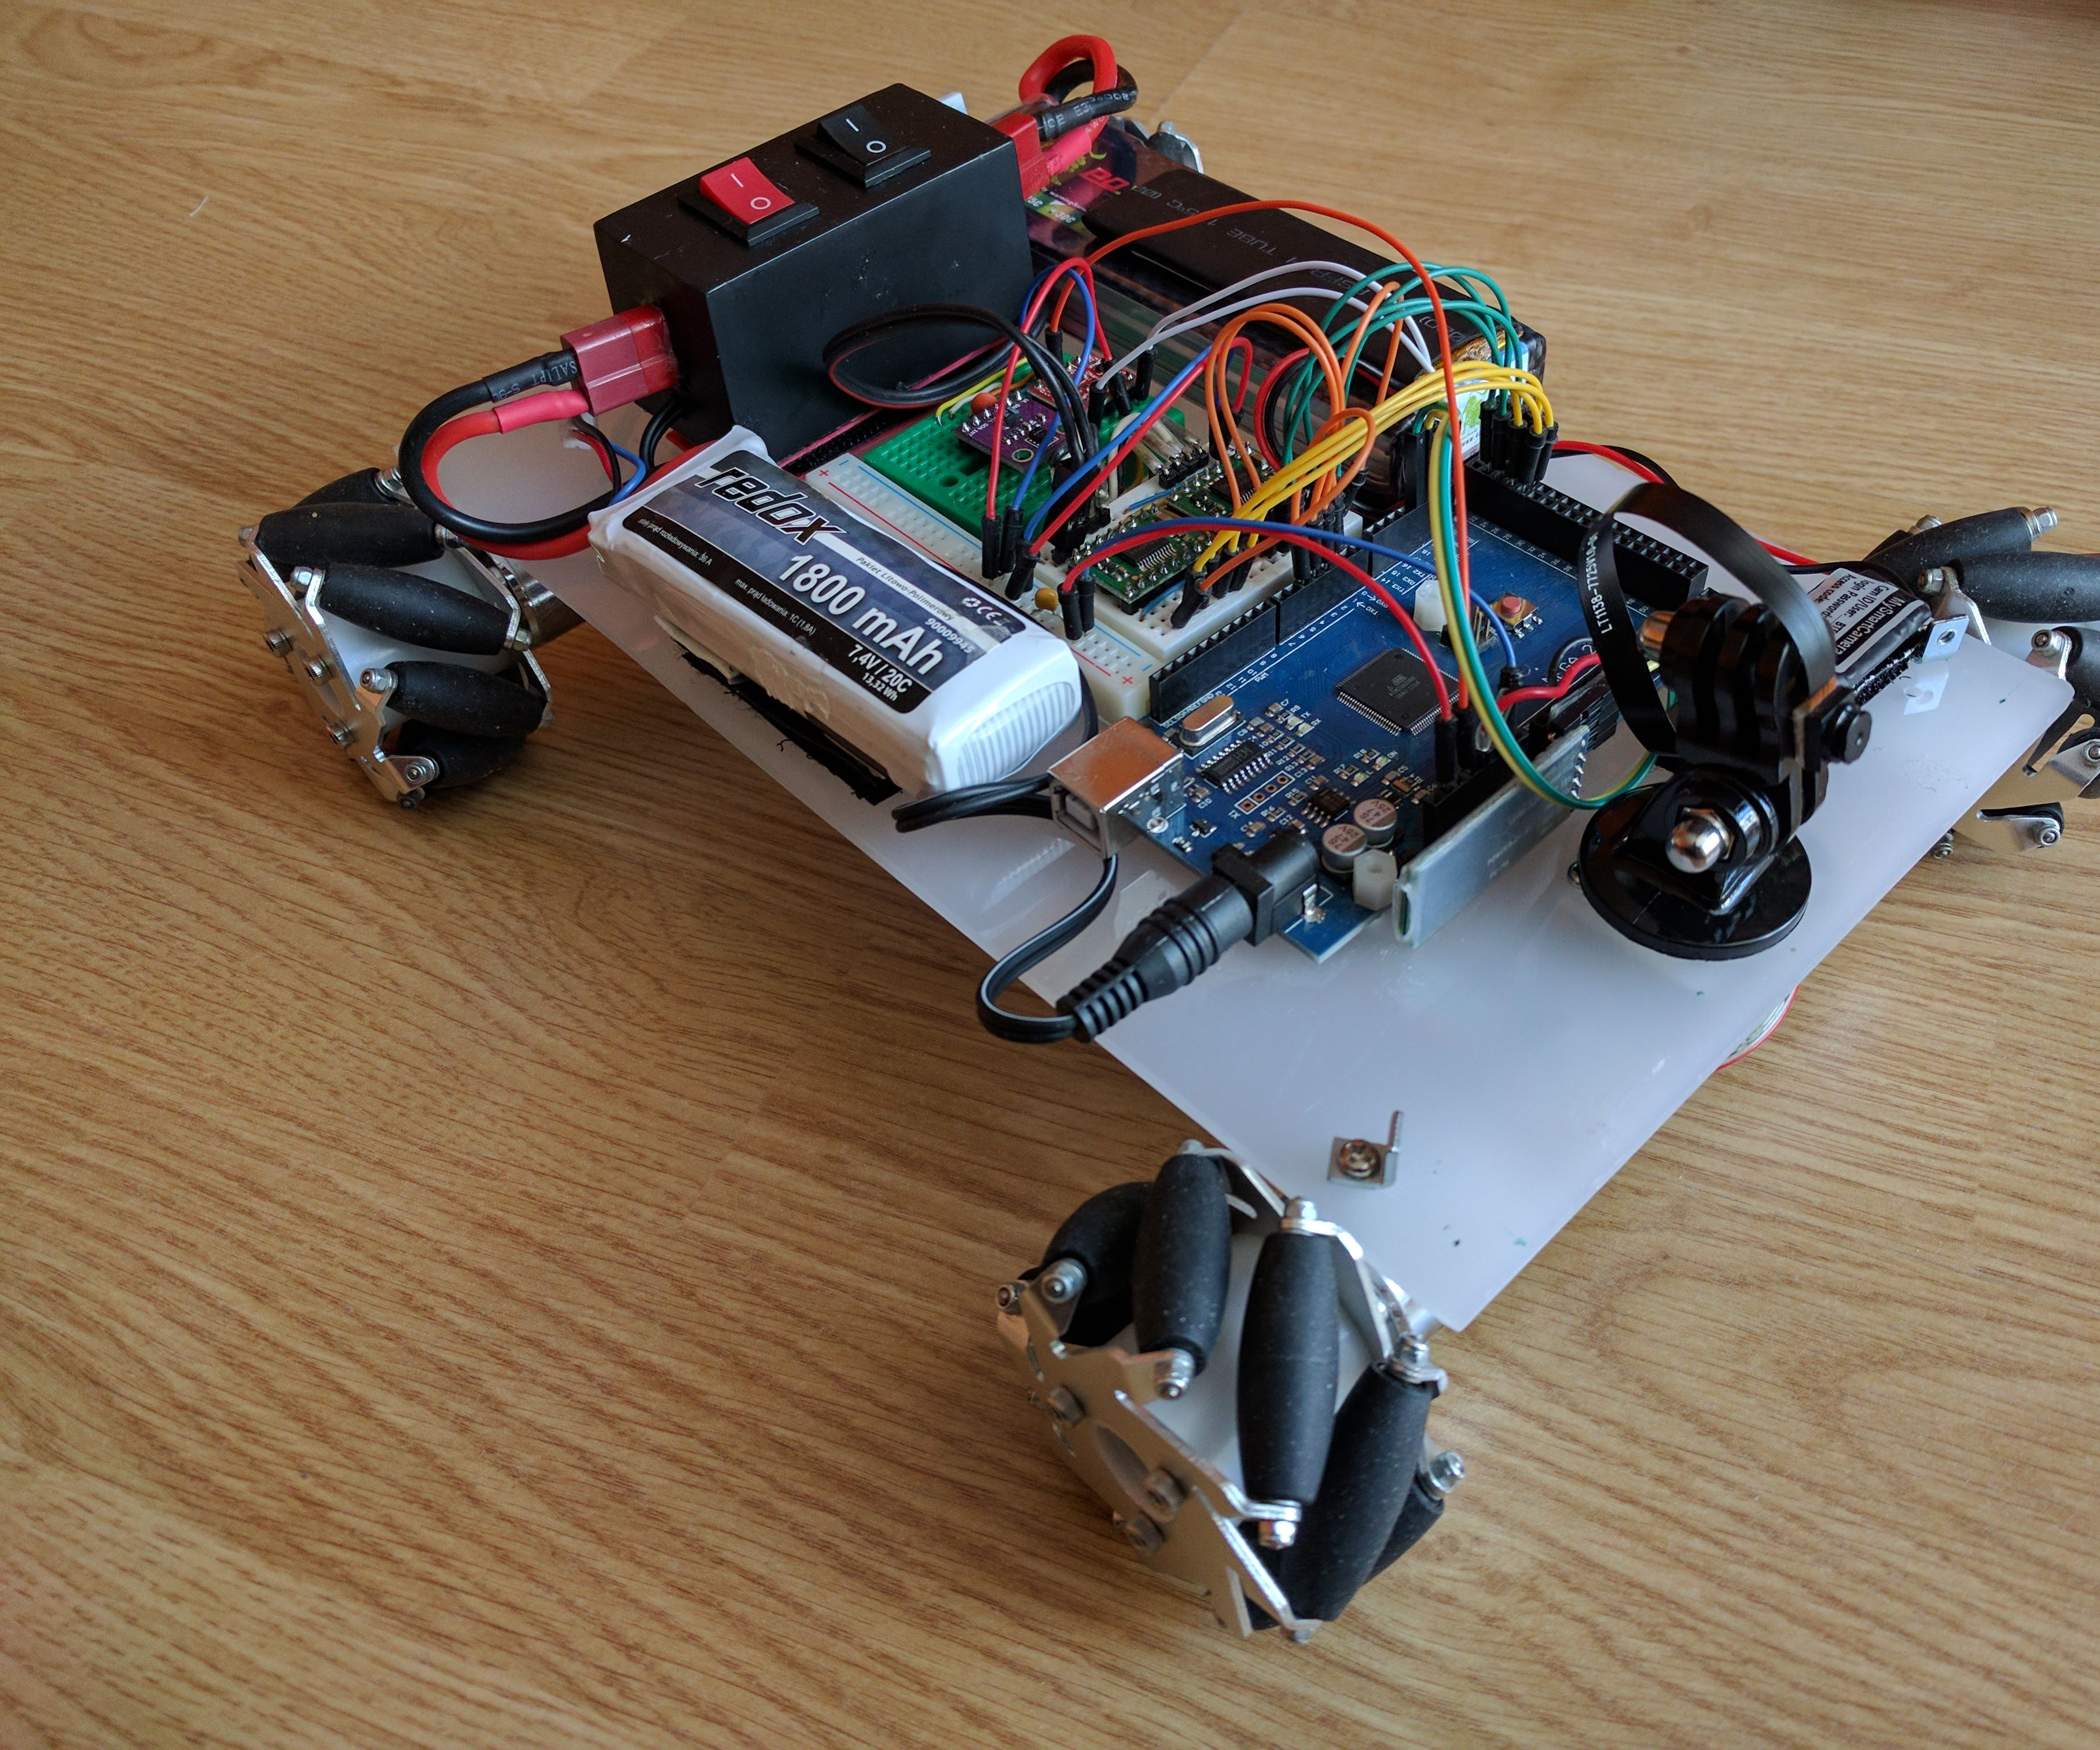 Voice and Gesture Controlled Mecanum Wheel Robot